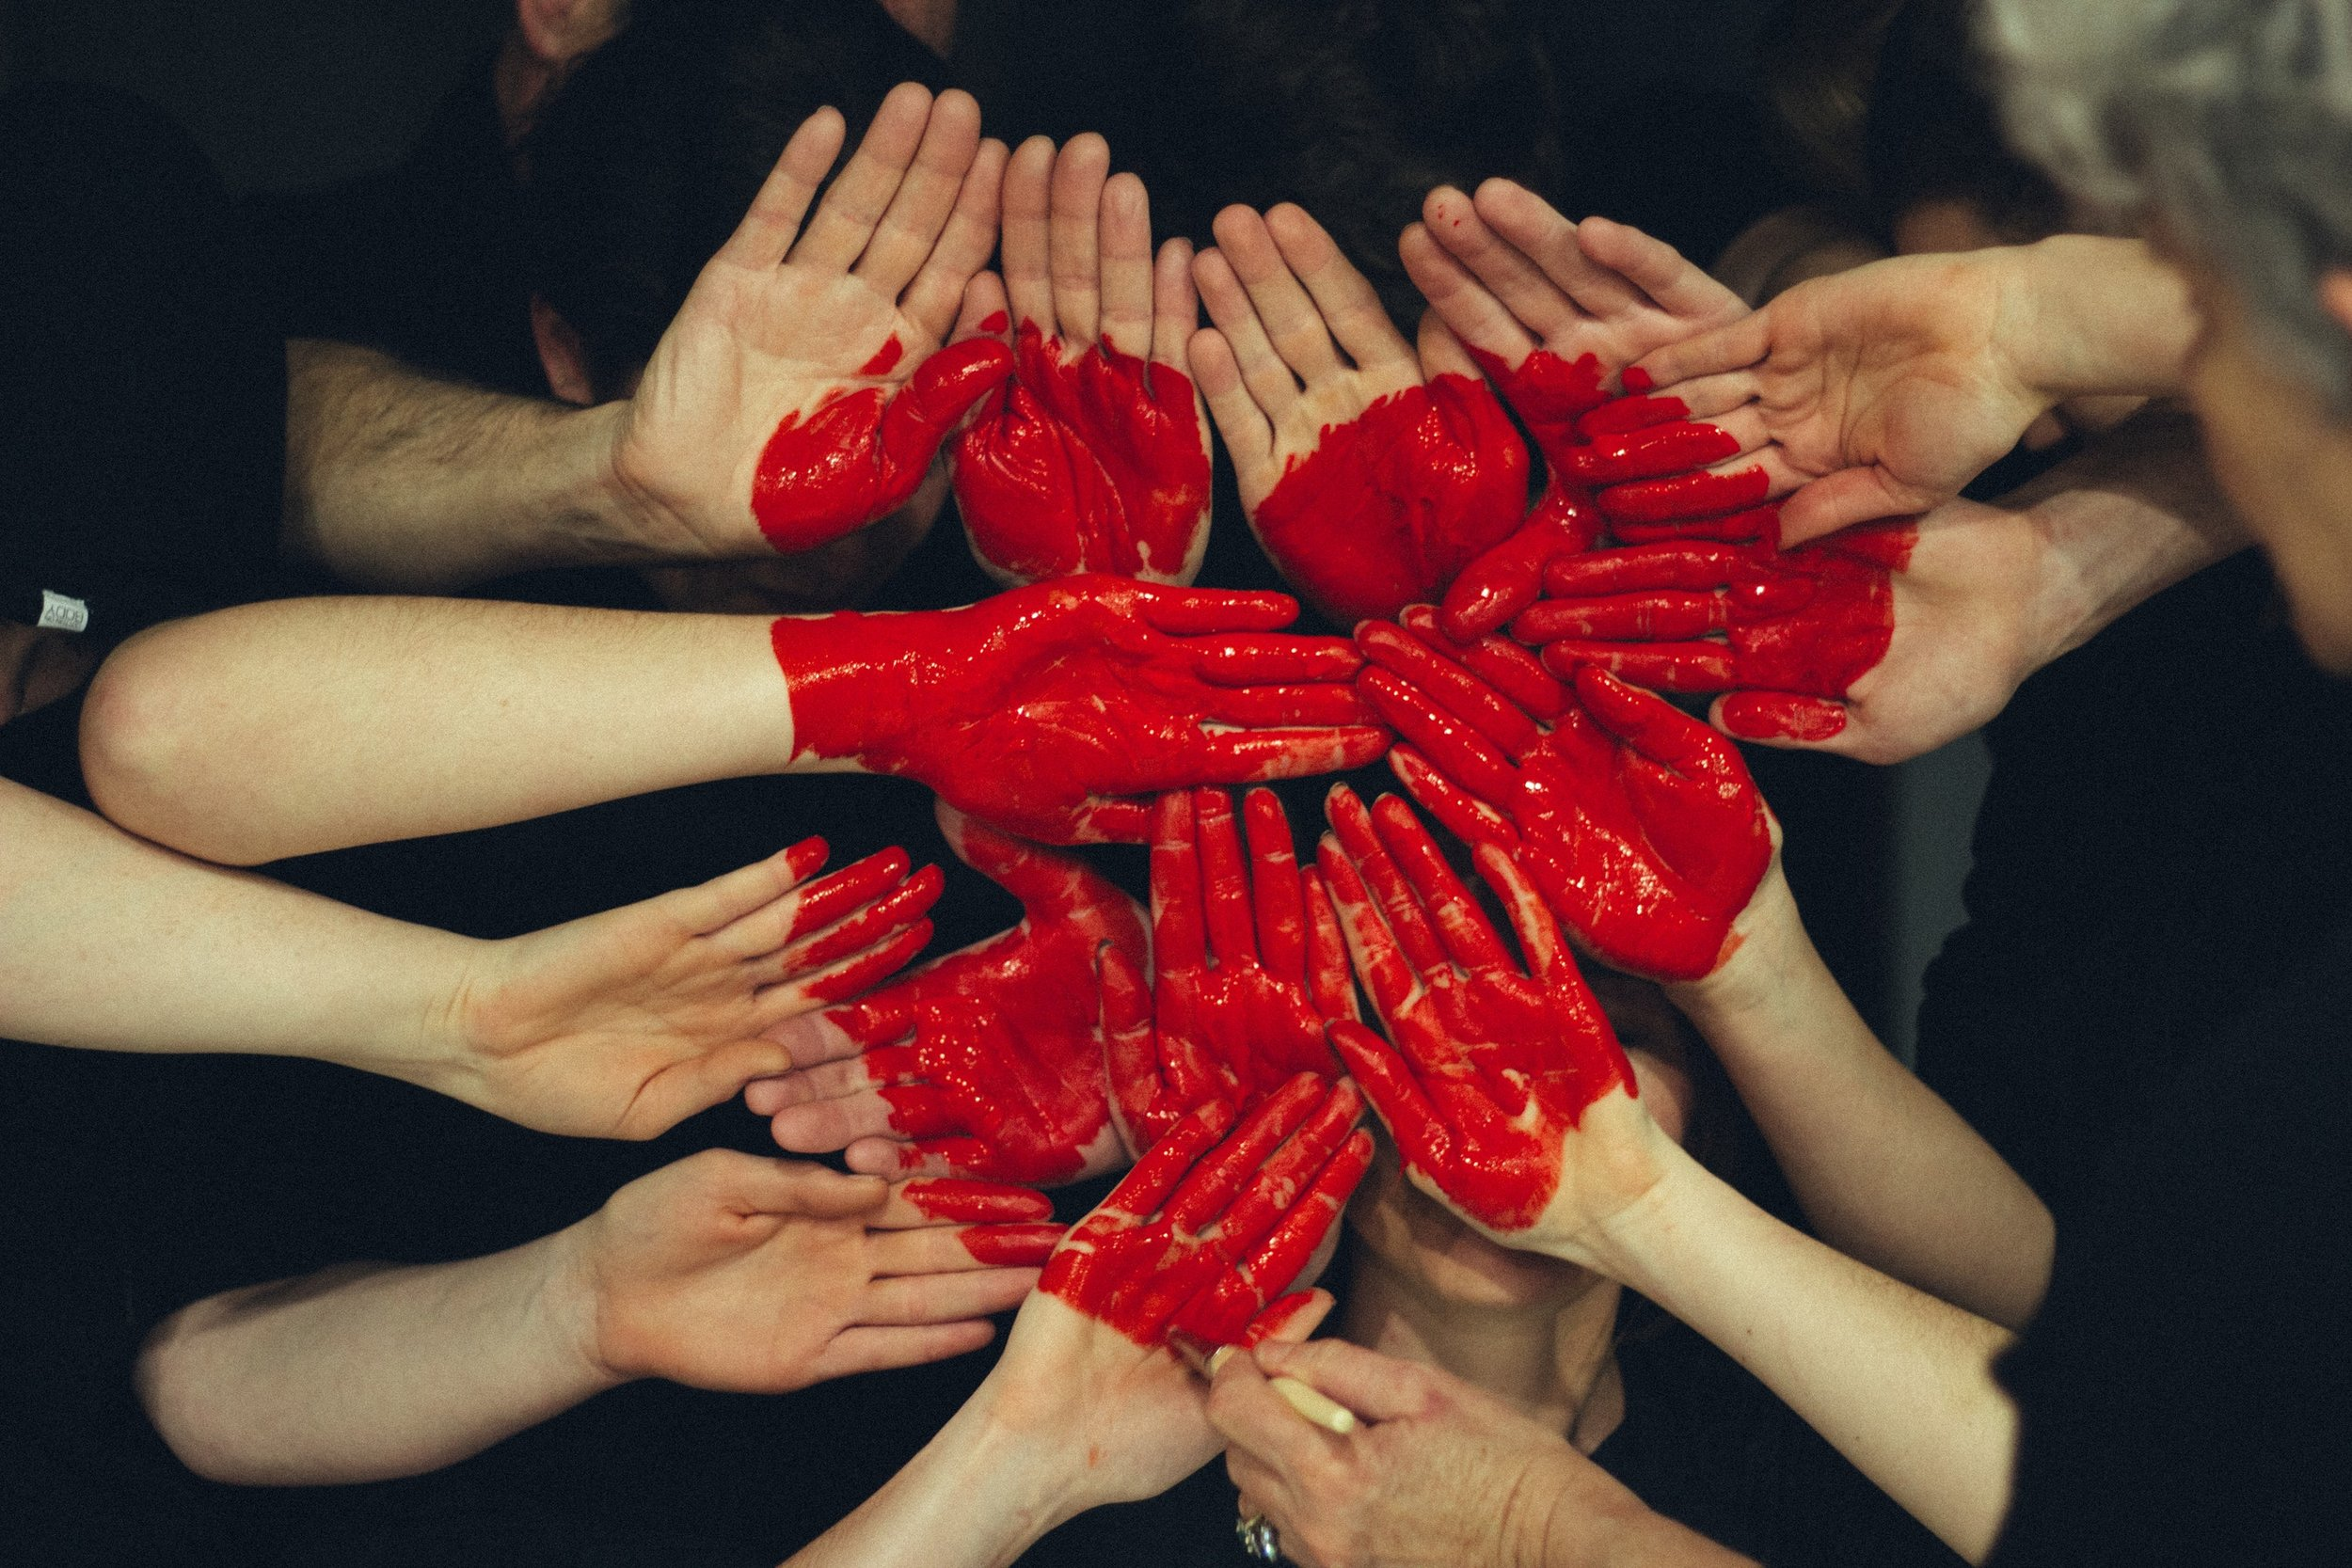 """Until we can receive with an open heart, we're never really giving with an open heart. When we attach judgment to receiving help, we knowingly or unknowingly attach judgment to giving help."" ― Brené Brown"